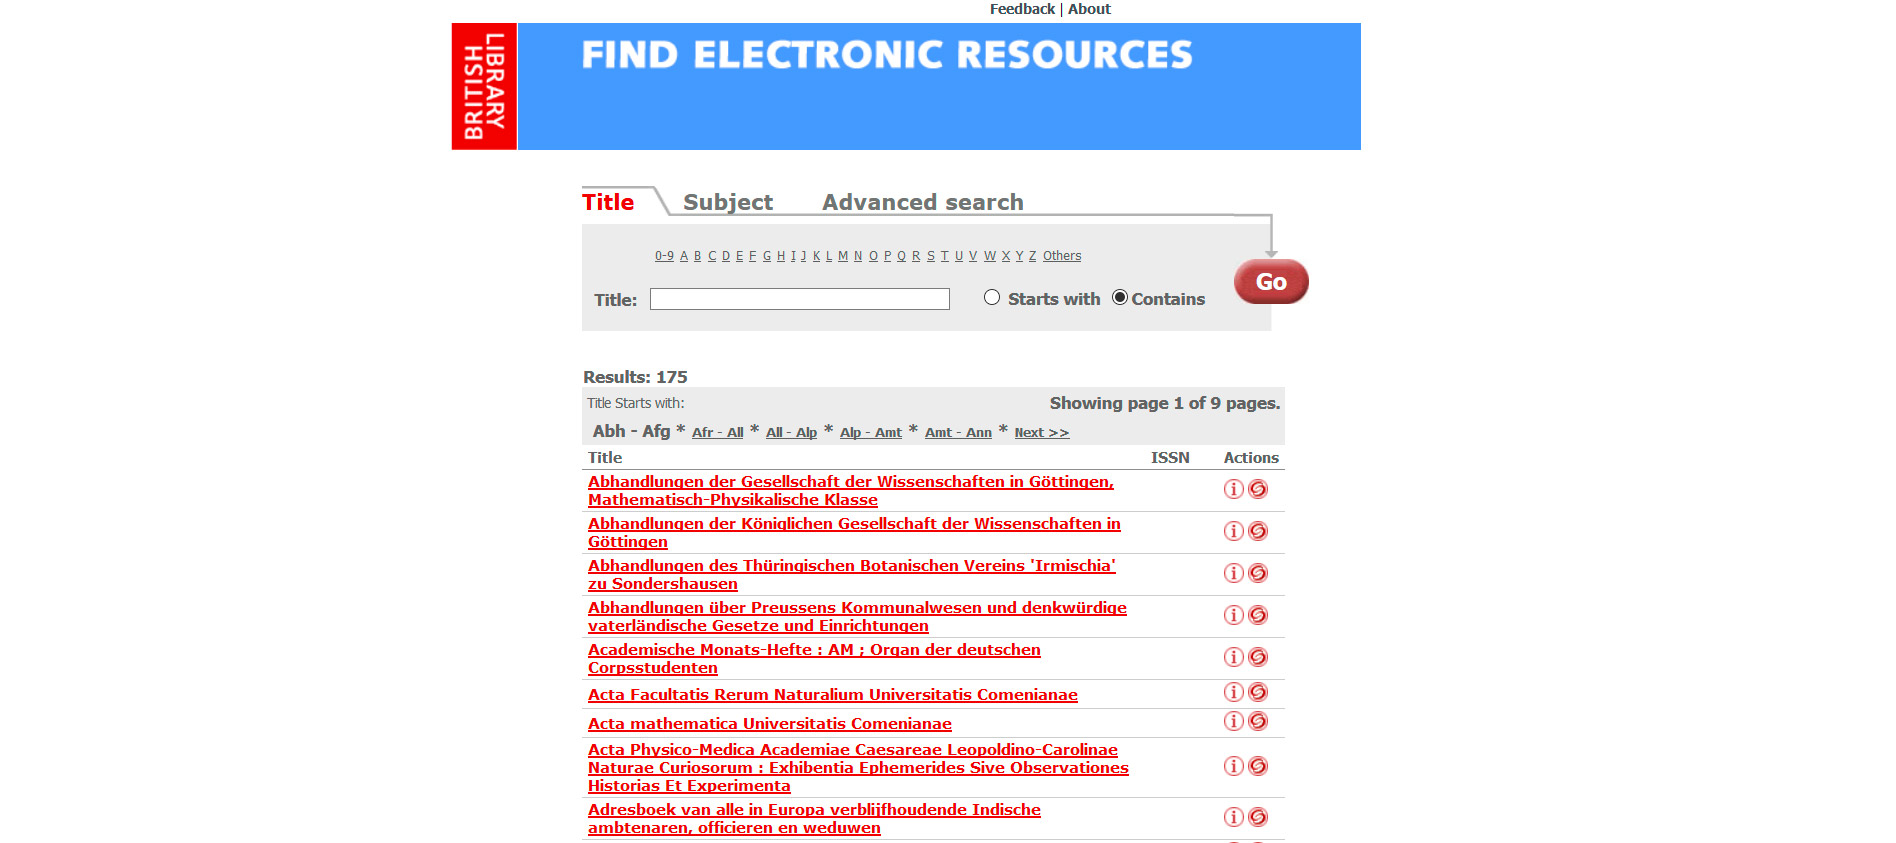 Electronicresources.bl.uk